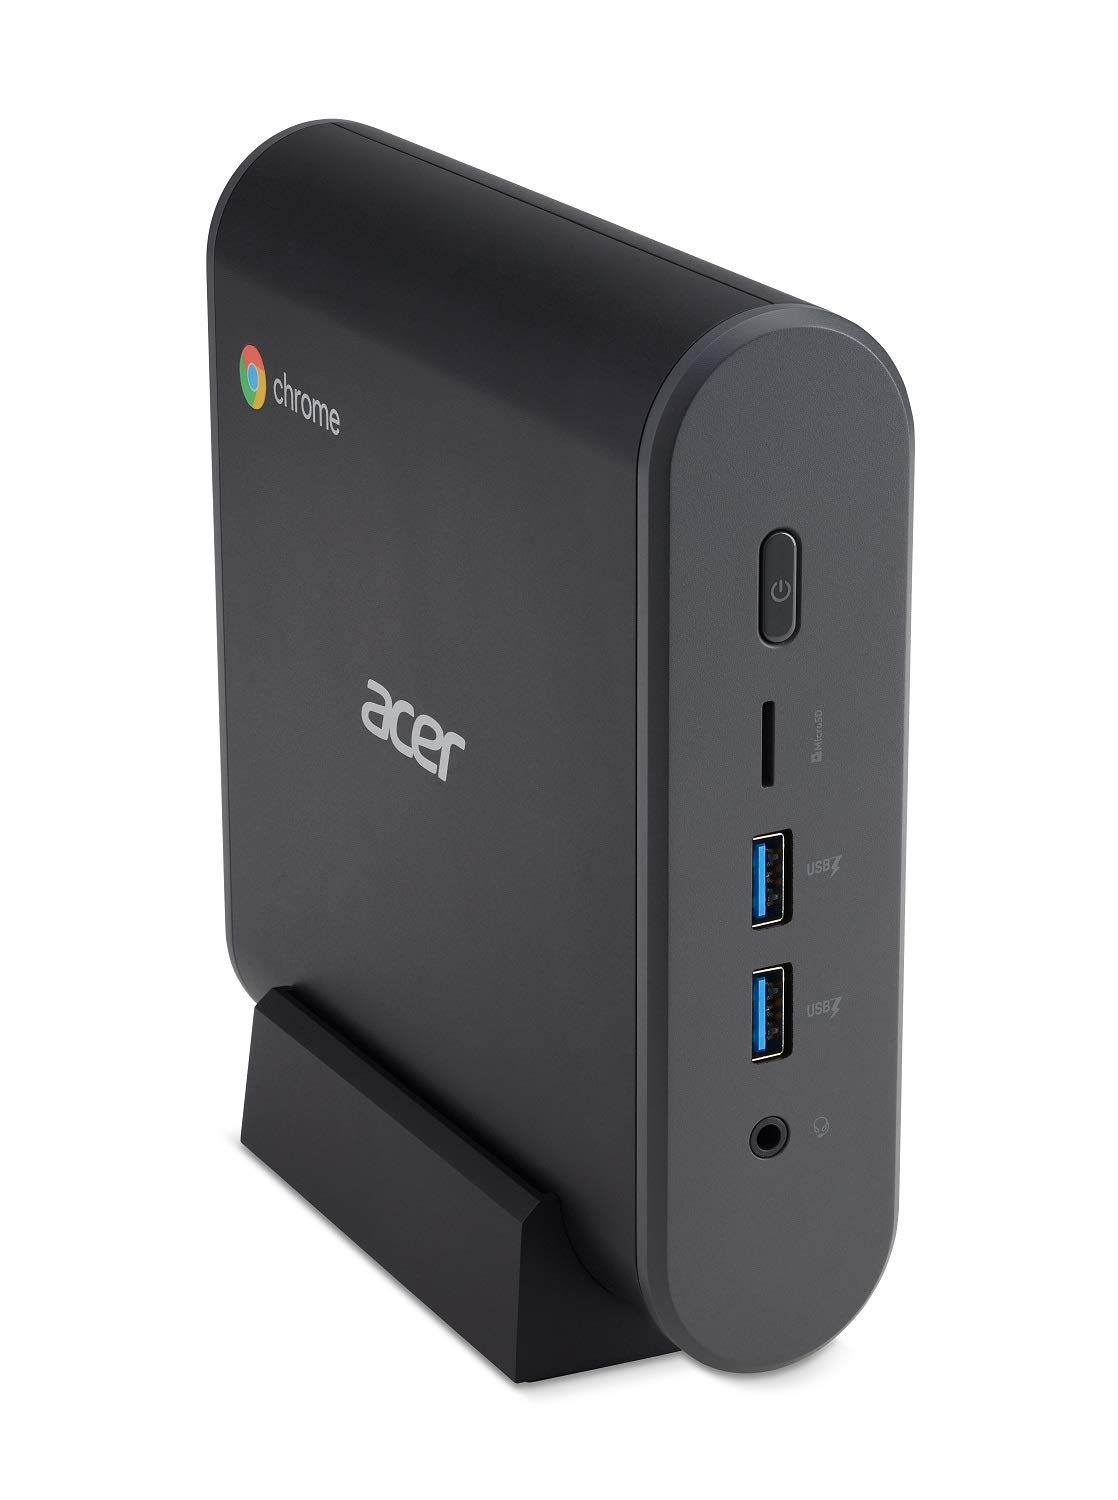 All Chromebooks with Ethernet ports in 2019